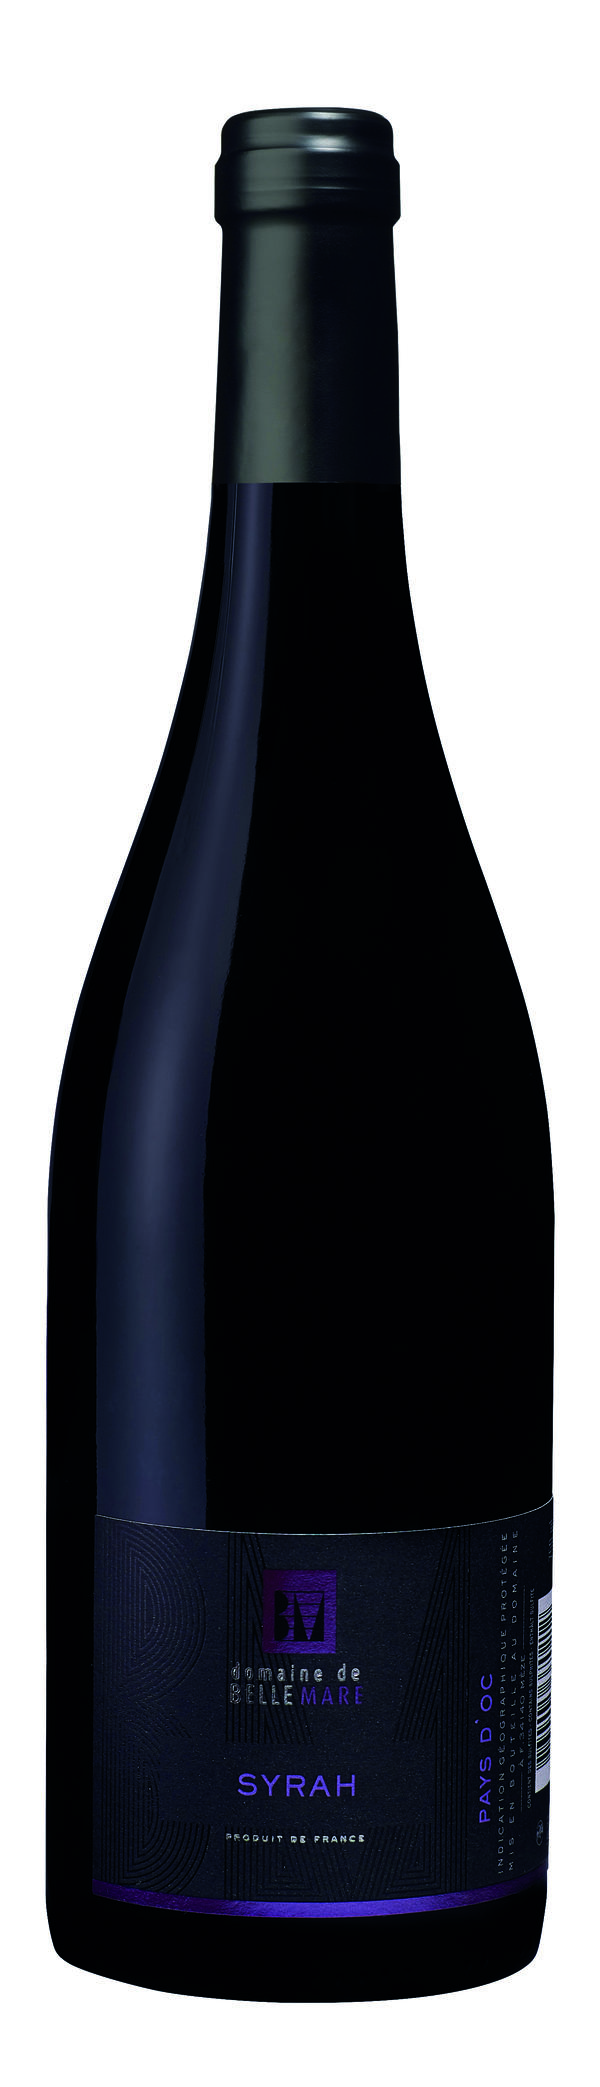 Syrah - IGP Pays d'Oc - Red